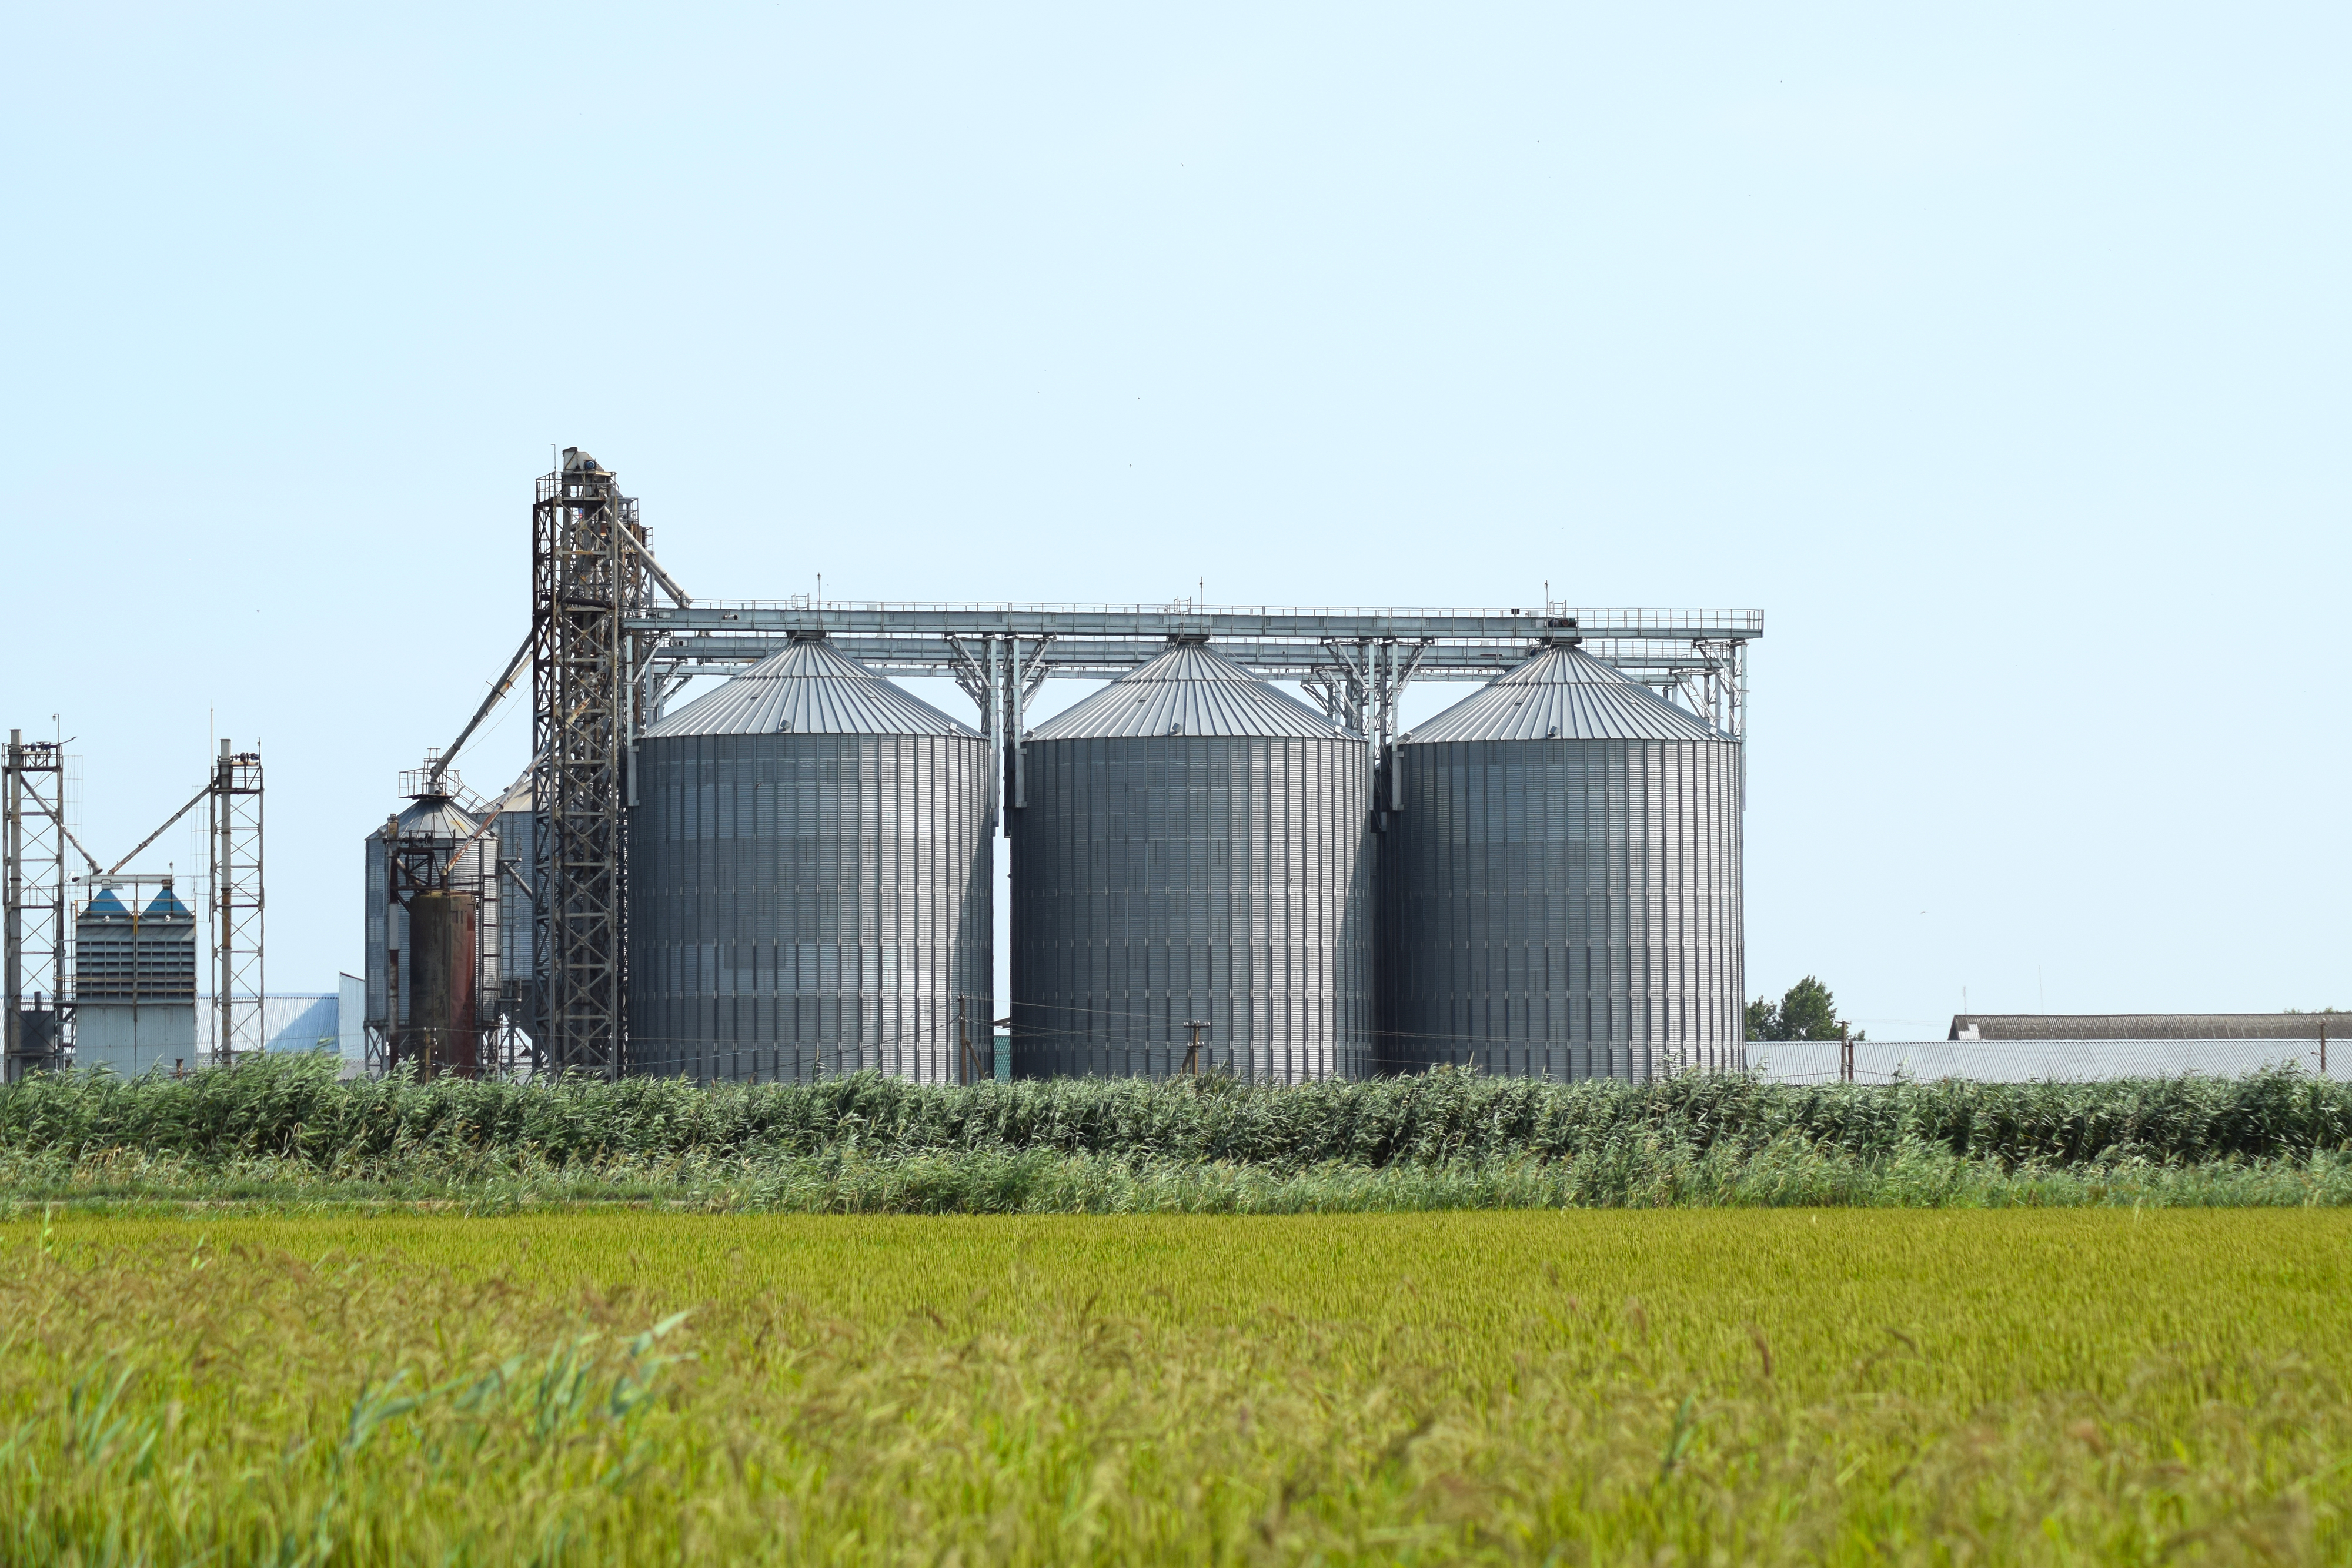 2 workers die after being trapped in grain silo - KNBN NewsCenter1